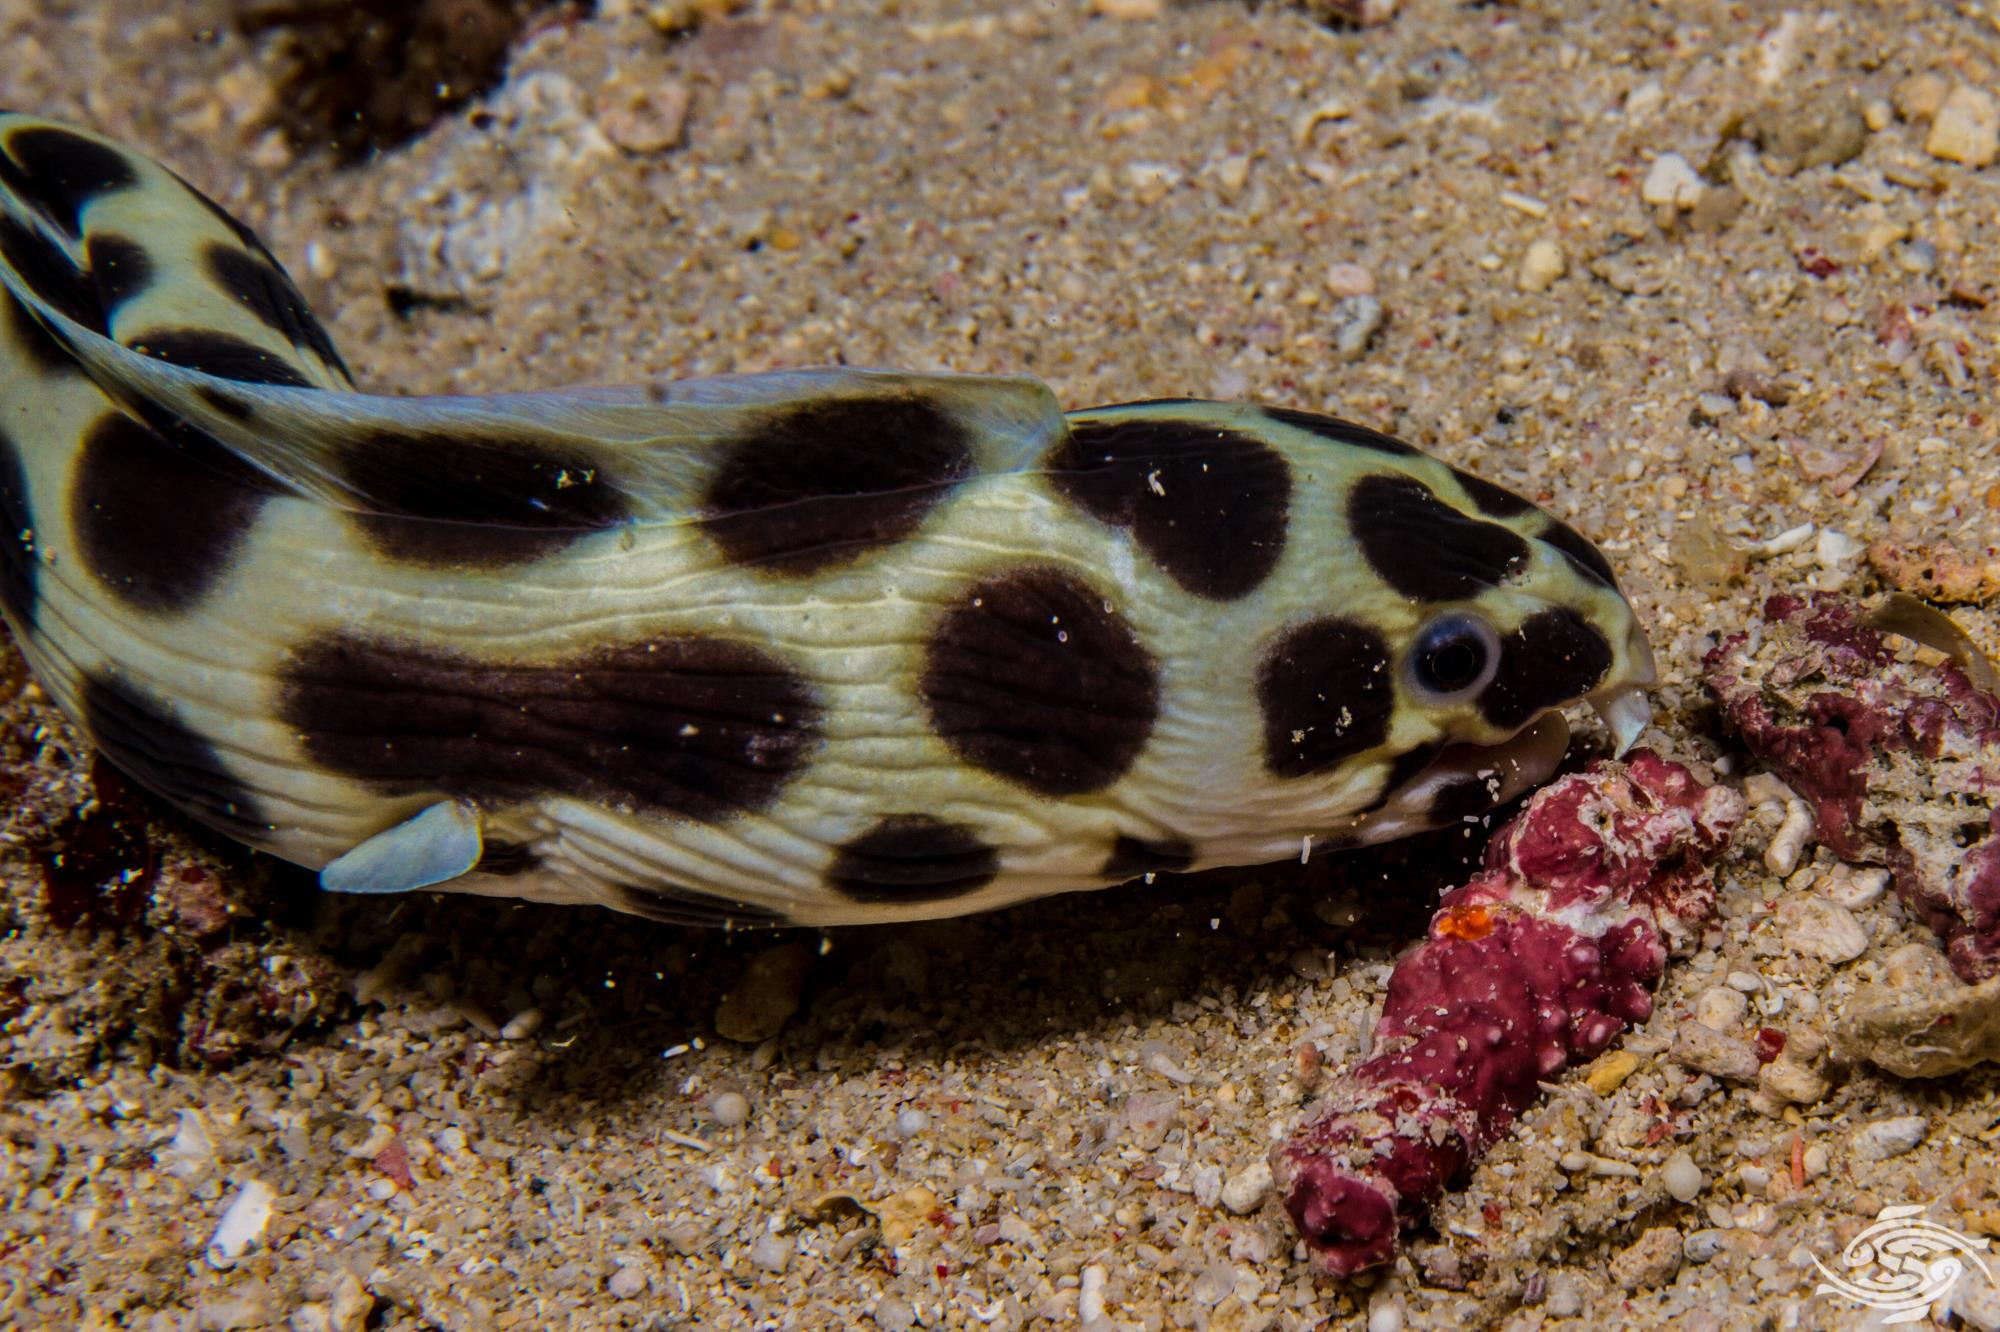 Ocellated Snake Eel ( Myrichthys maculosus) is also known as the Ocellate Snake Eel,Tiger Snake Eel, Leopard Eel and Magnificent Snake Eel